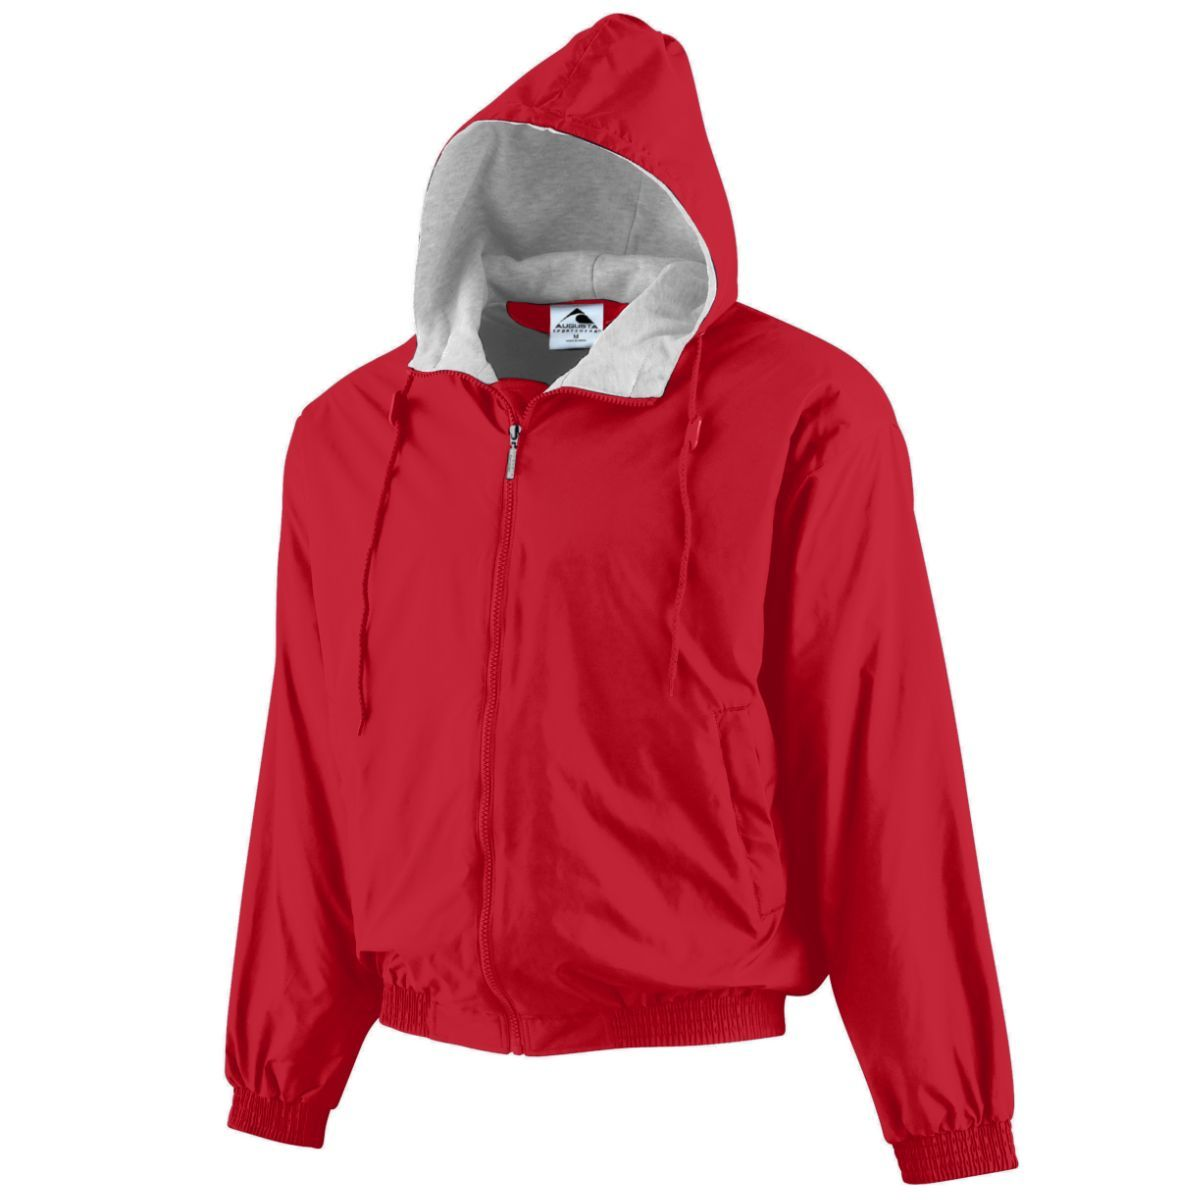 Hooded Taffeta Jacket/Fleece Lined - RED